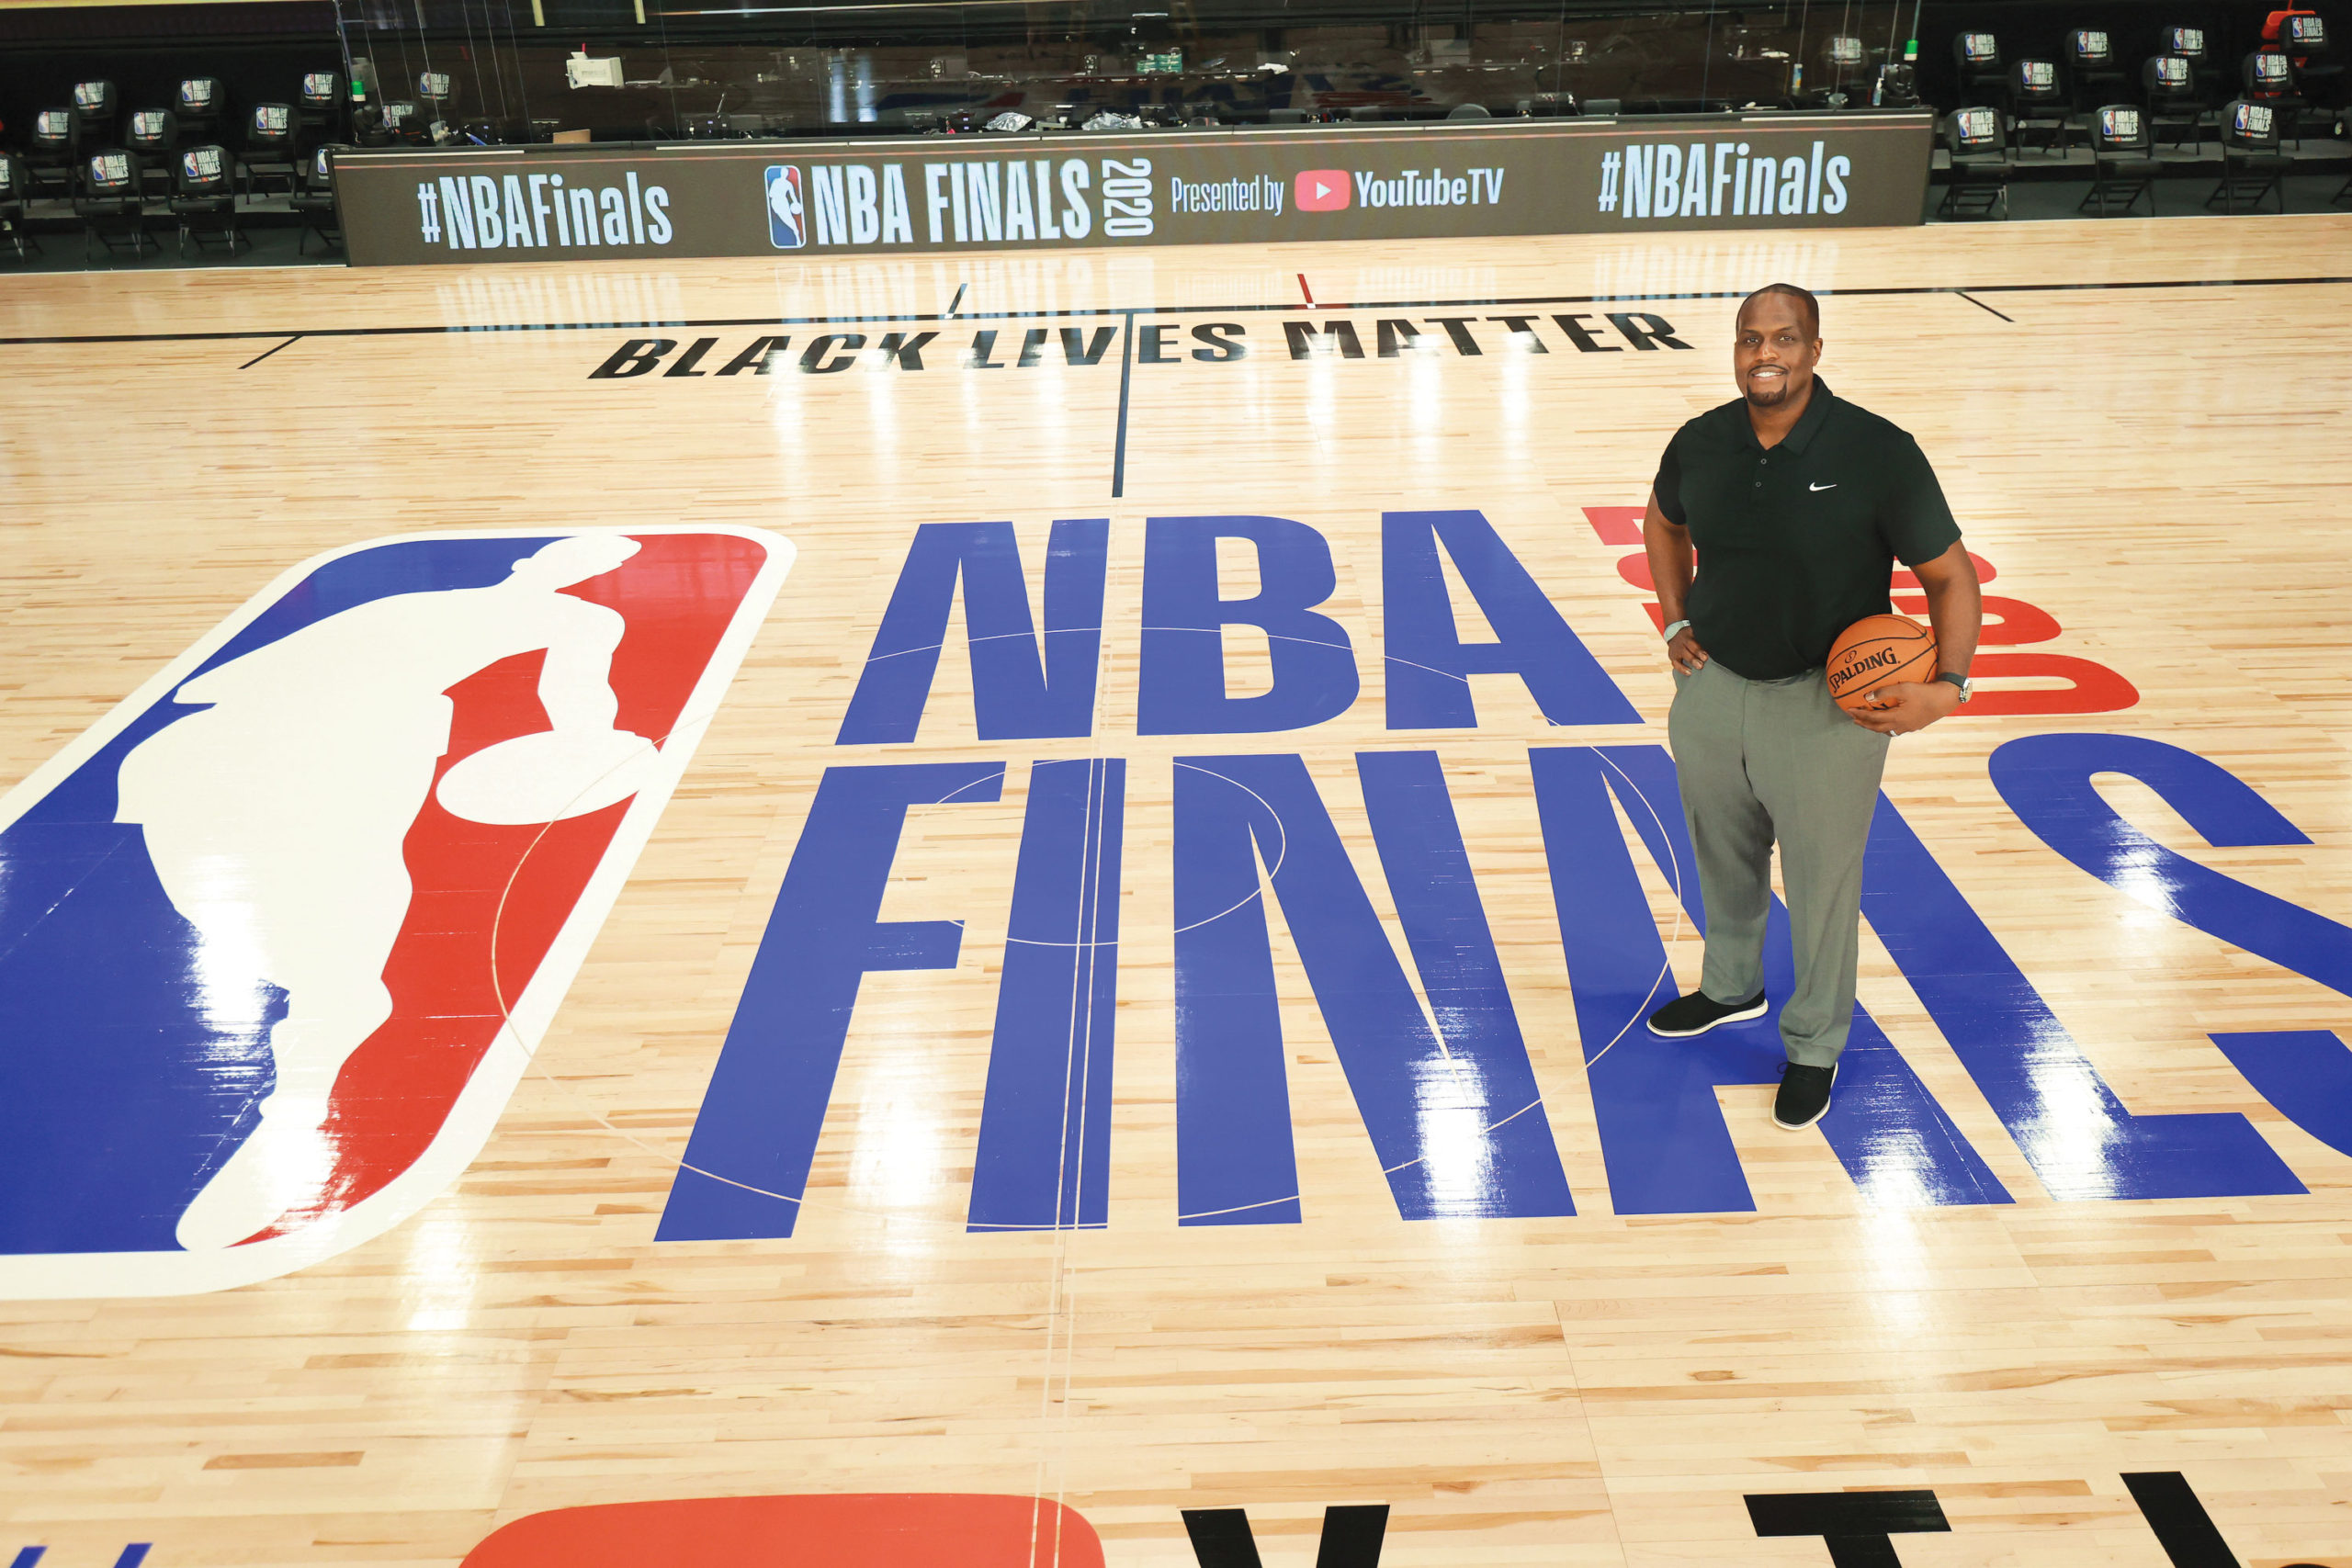 Malik Rose standing on an NBA court